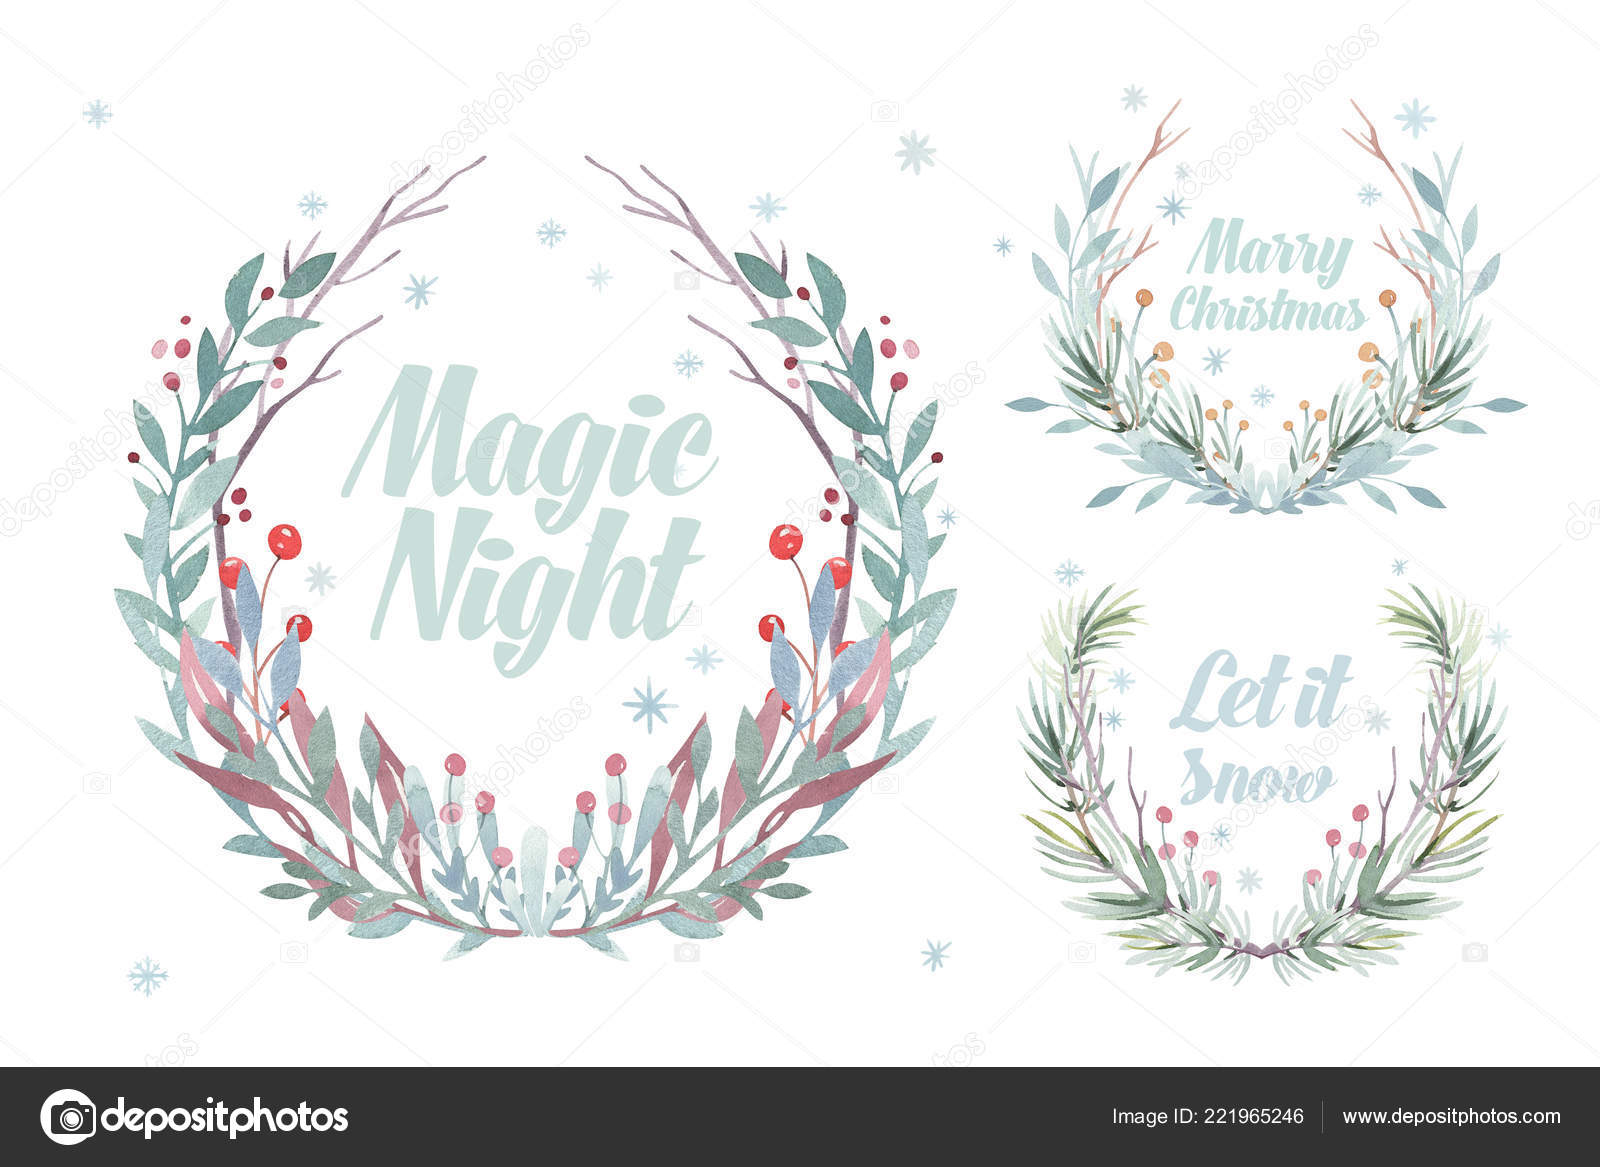 Christmas Wreath Card Winter Watercolor Painting Illustration Berry Wreath For Christmas Greeting New Year Holiday Frame Stock Photo C Mykef 221965246